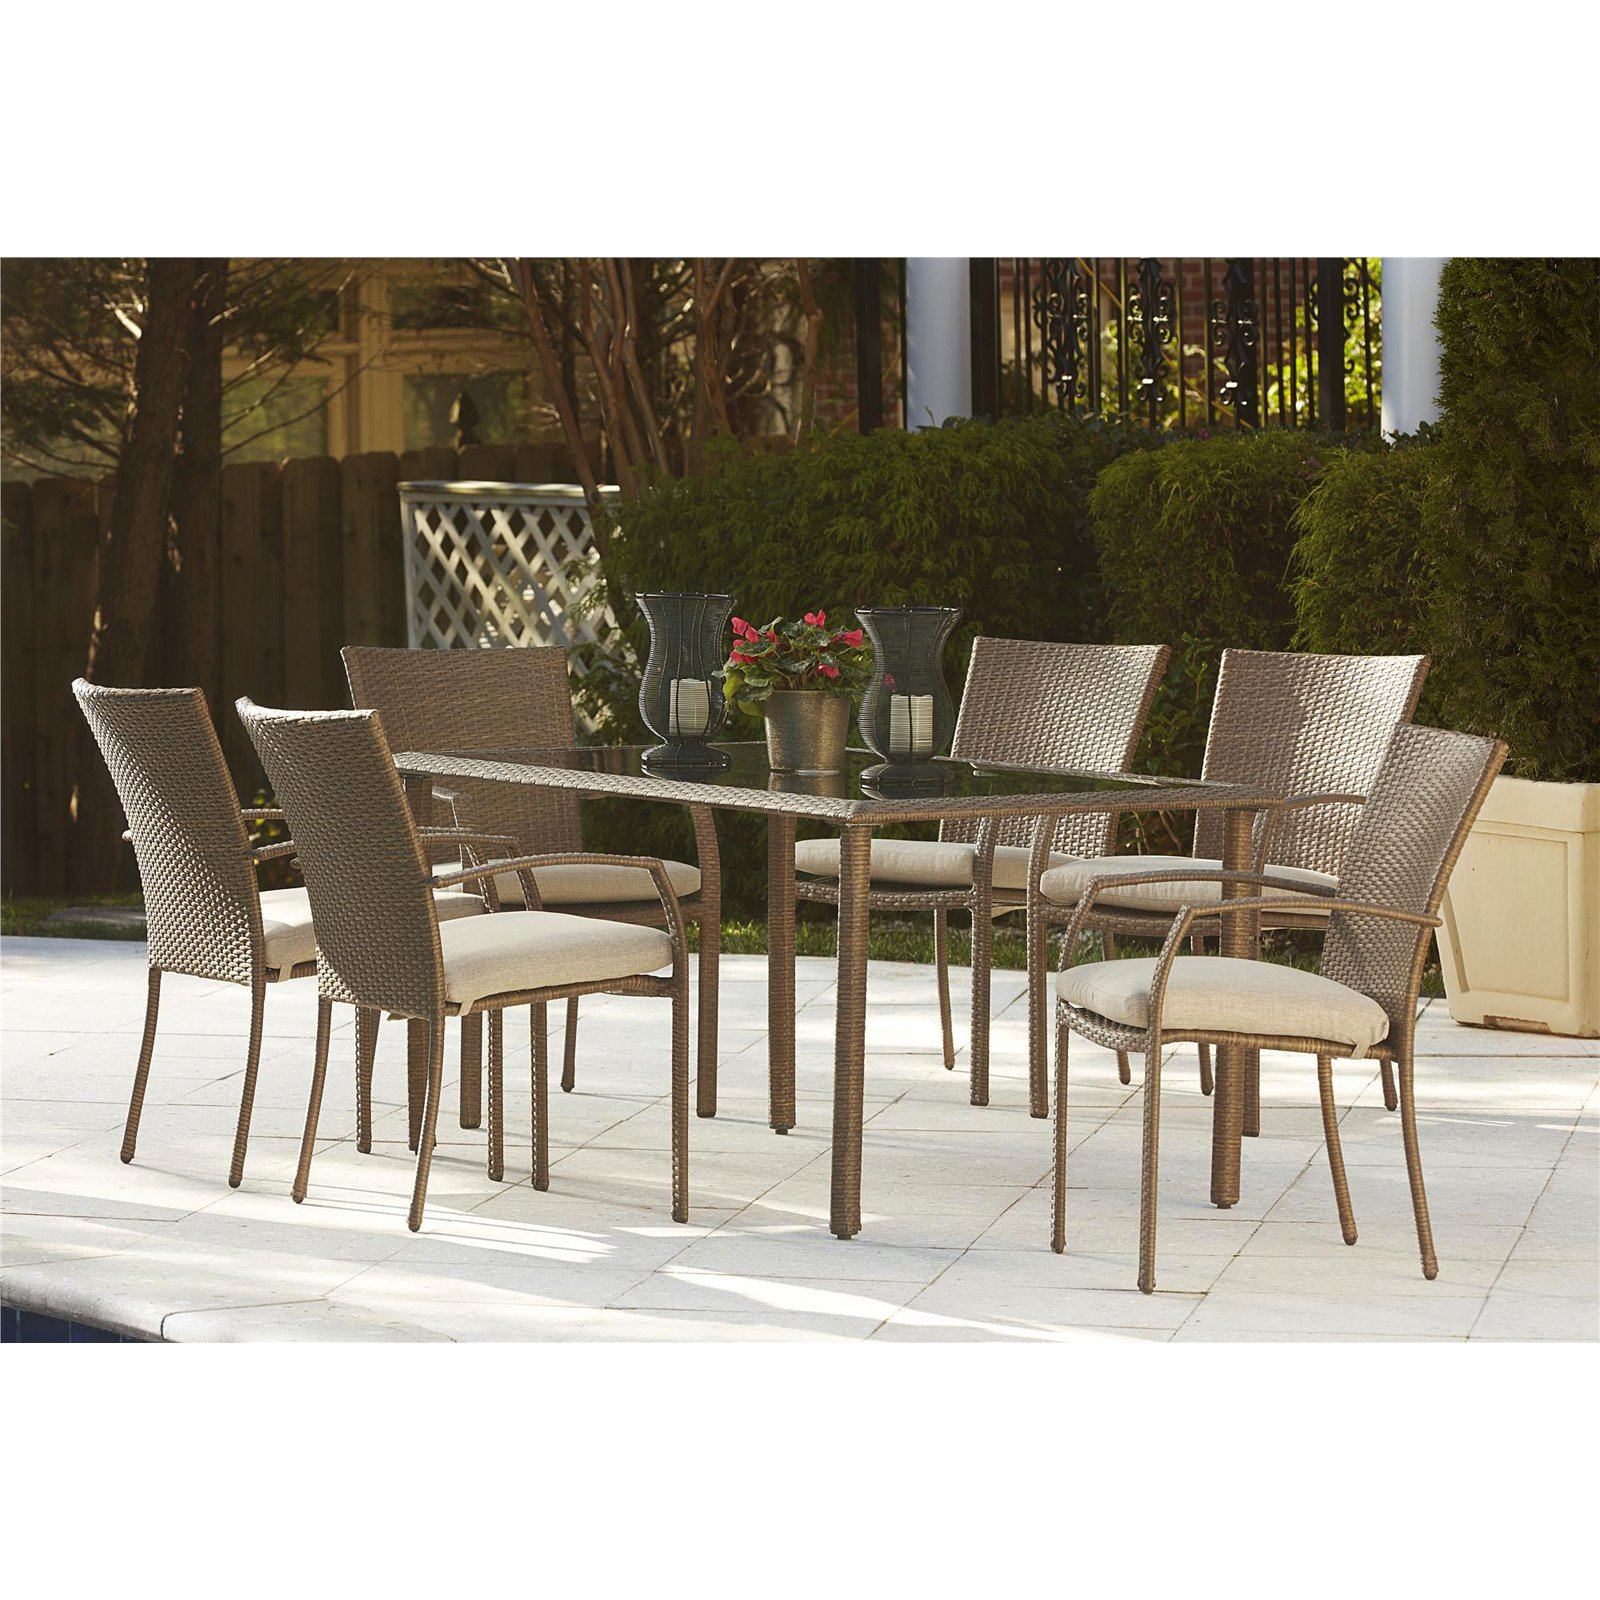 Cosco Outdoor 7-Piece Lakewood Ranch Steel Woven Wicker Patio Dining Room Set with... by Patio Sets